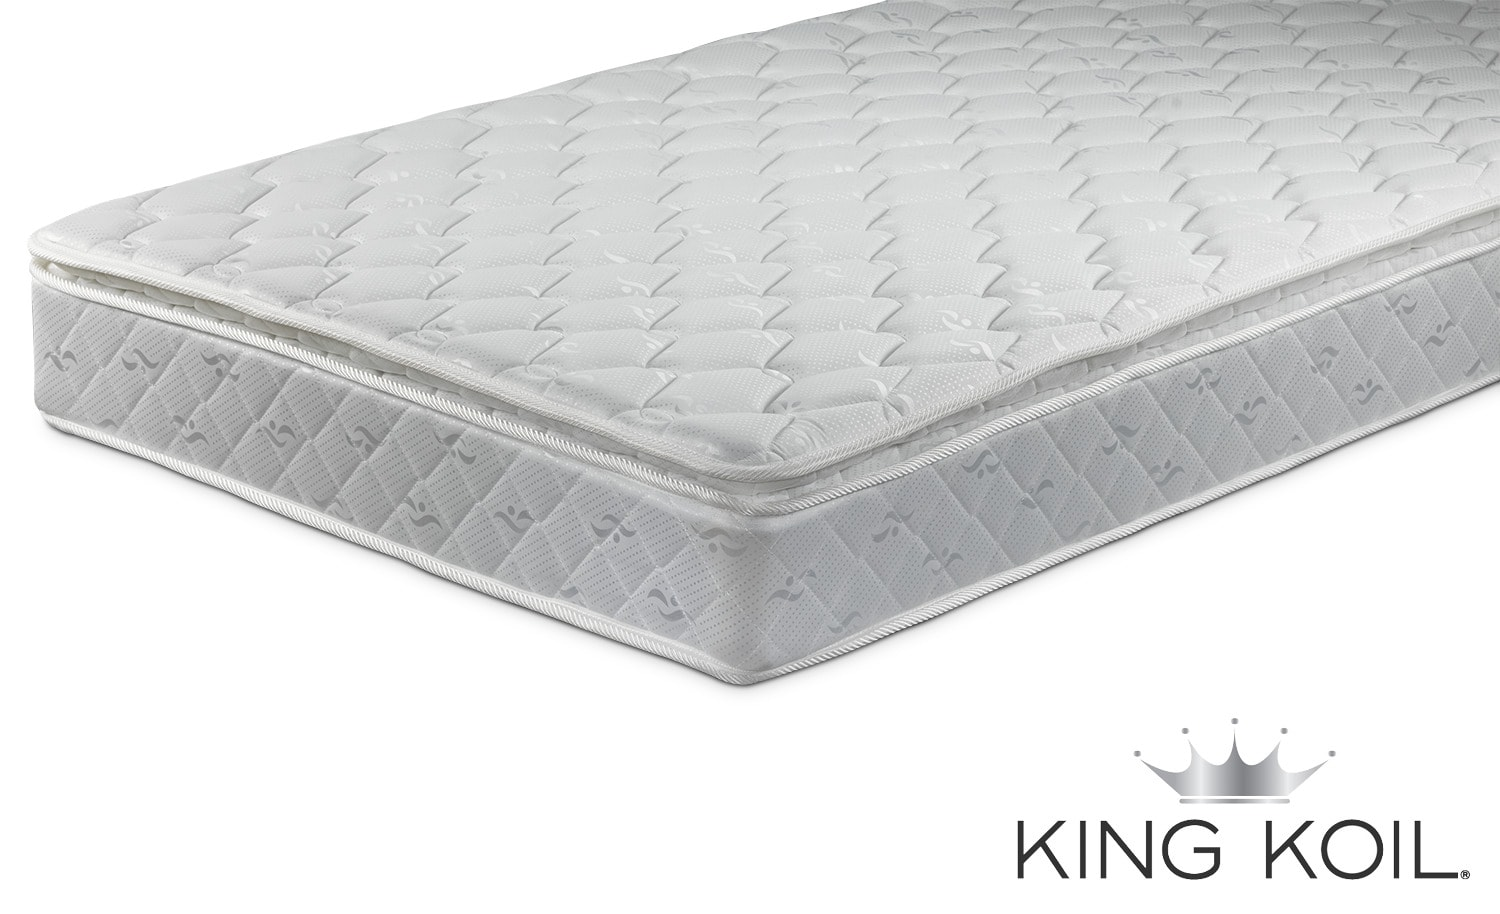 King Koil Majic Nights Cushion Firm Queen Mattress